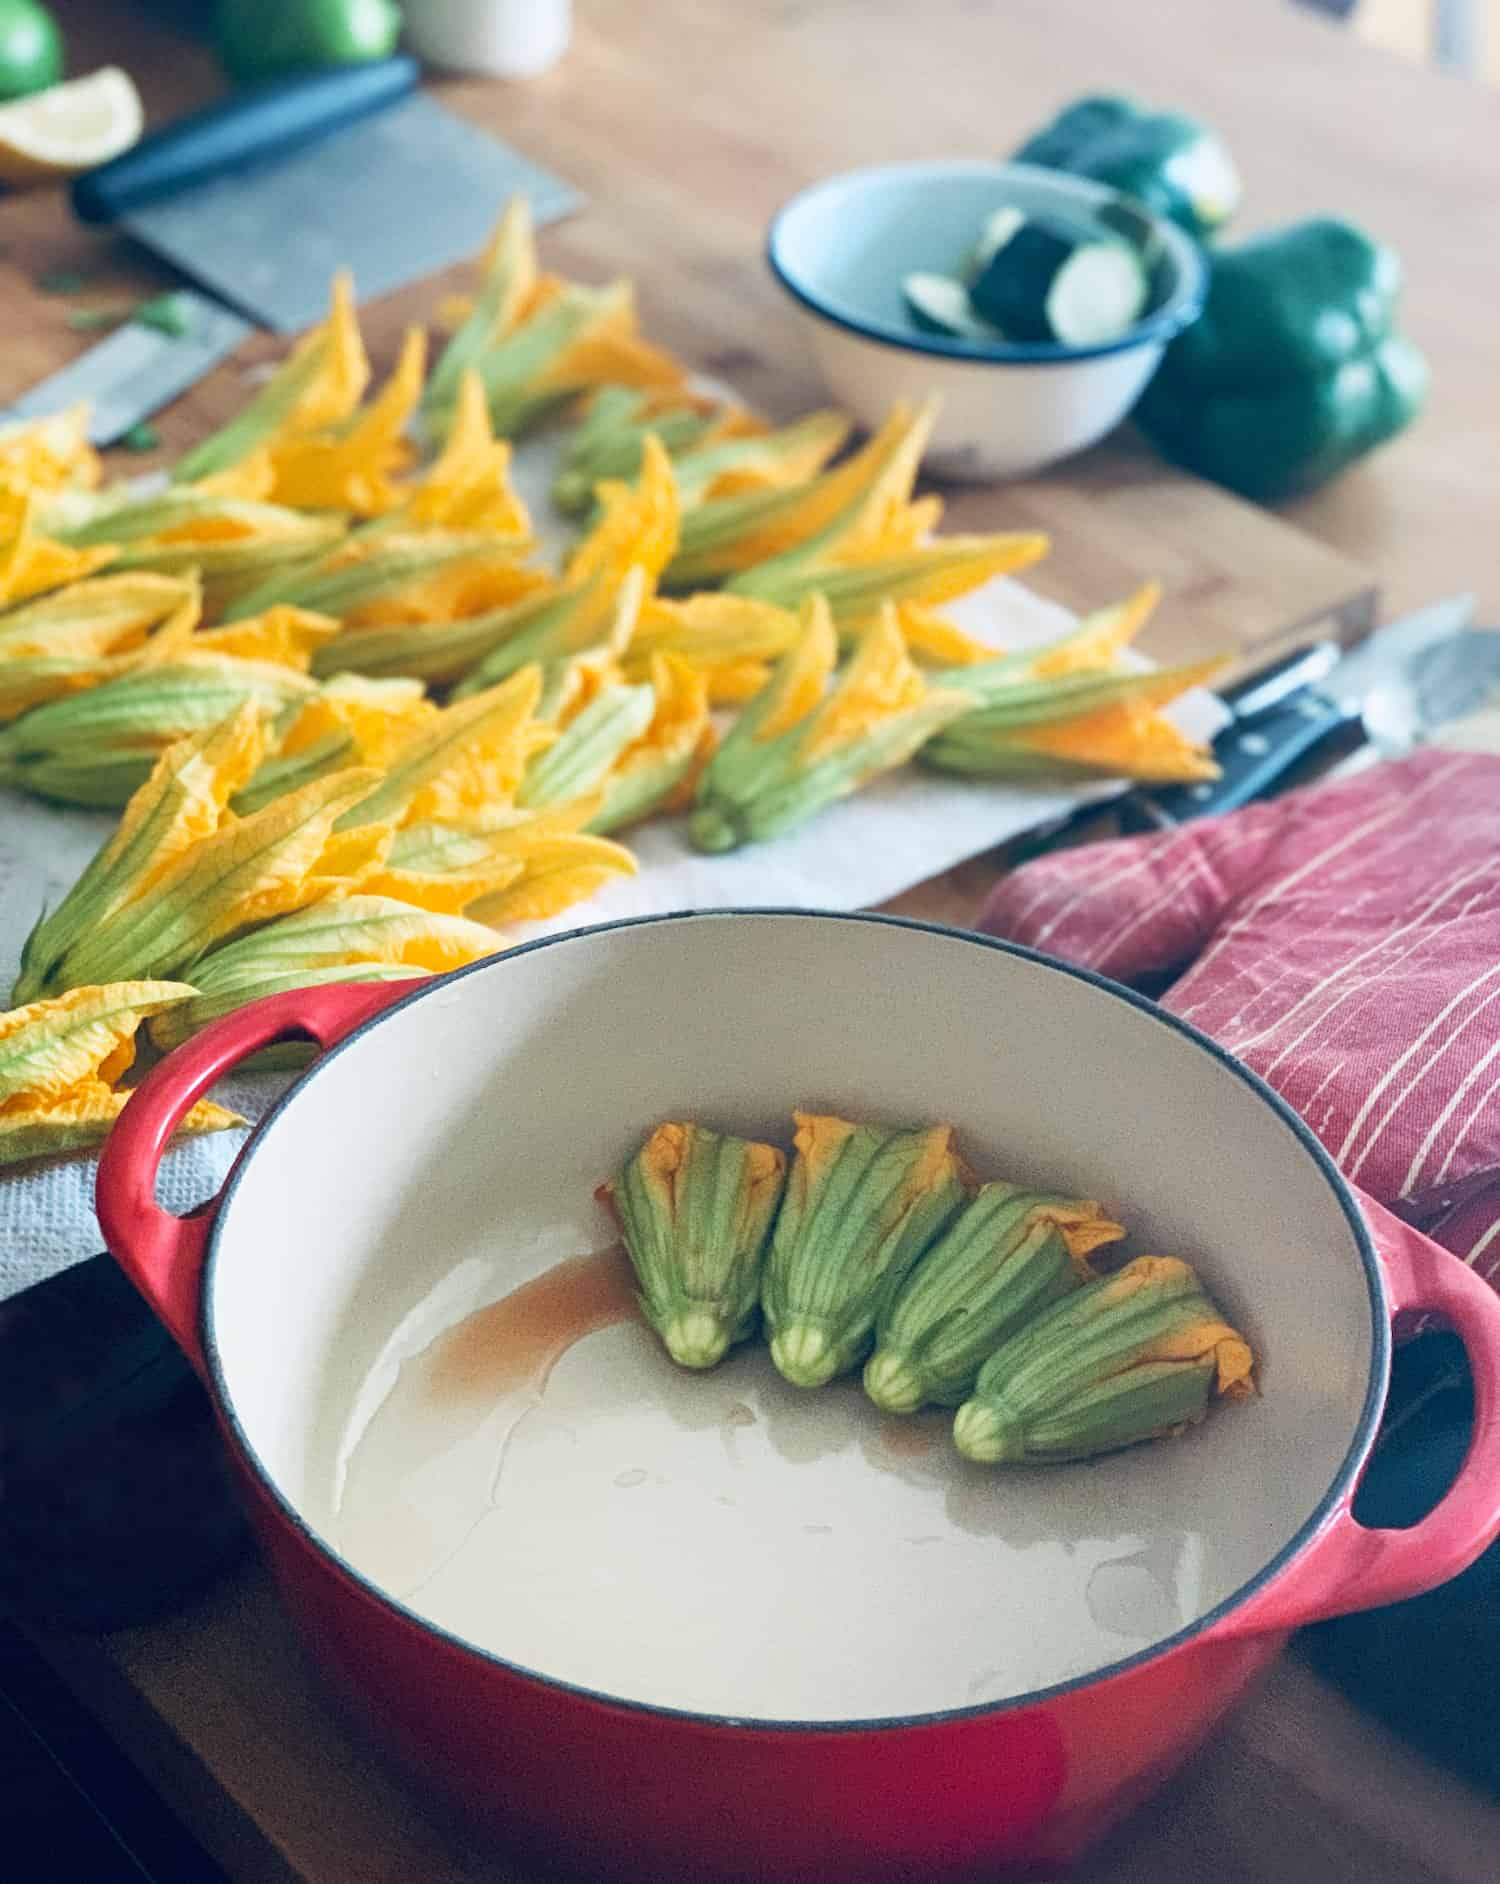 Stuffed squash blossoms in a red pot, in the background blossoms freshly washed on a paper towel and some cut up vegetables in a bowl.